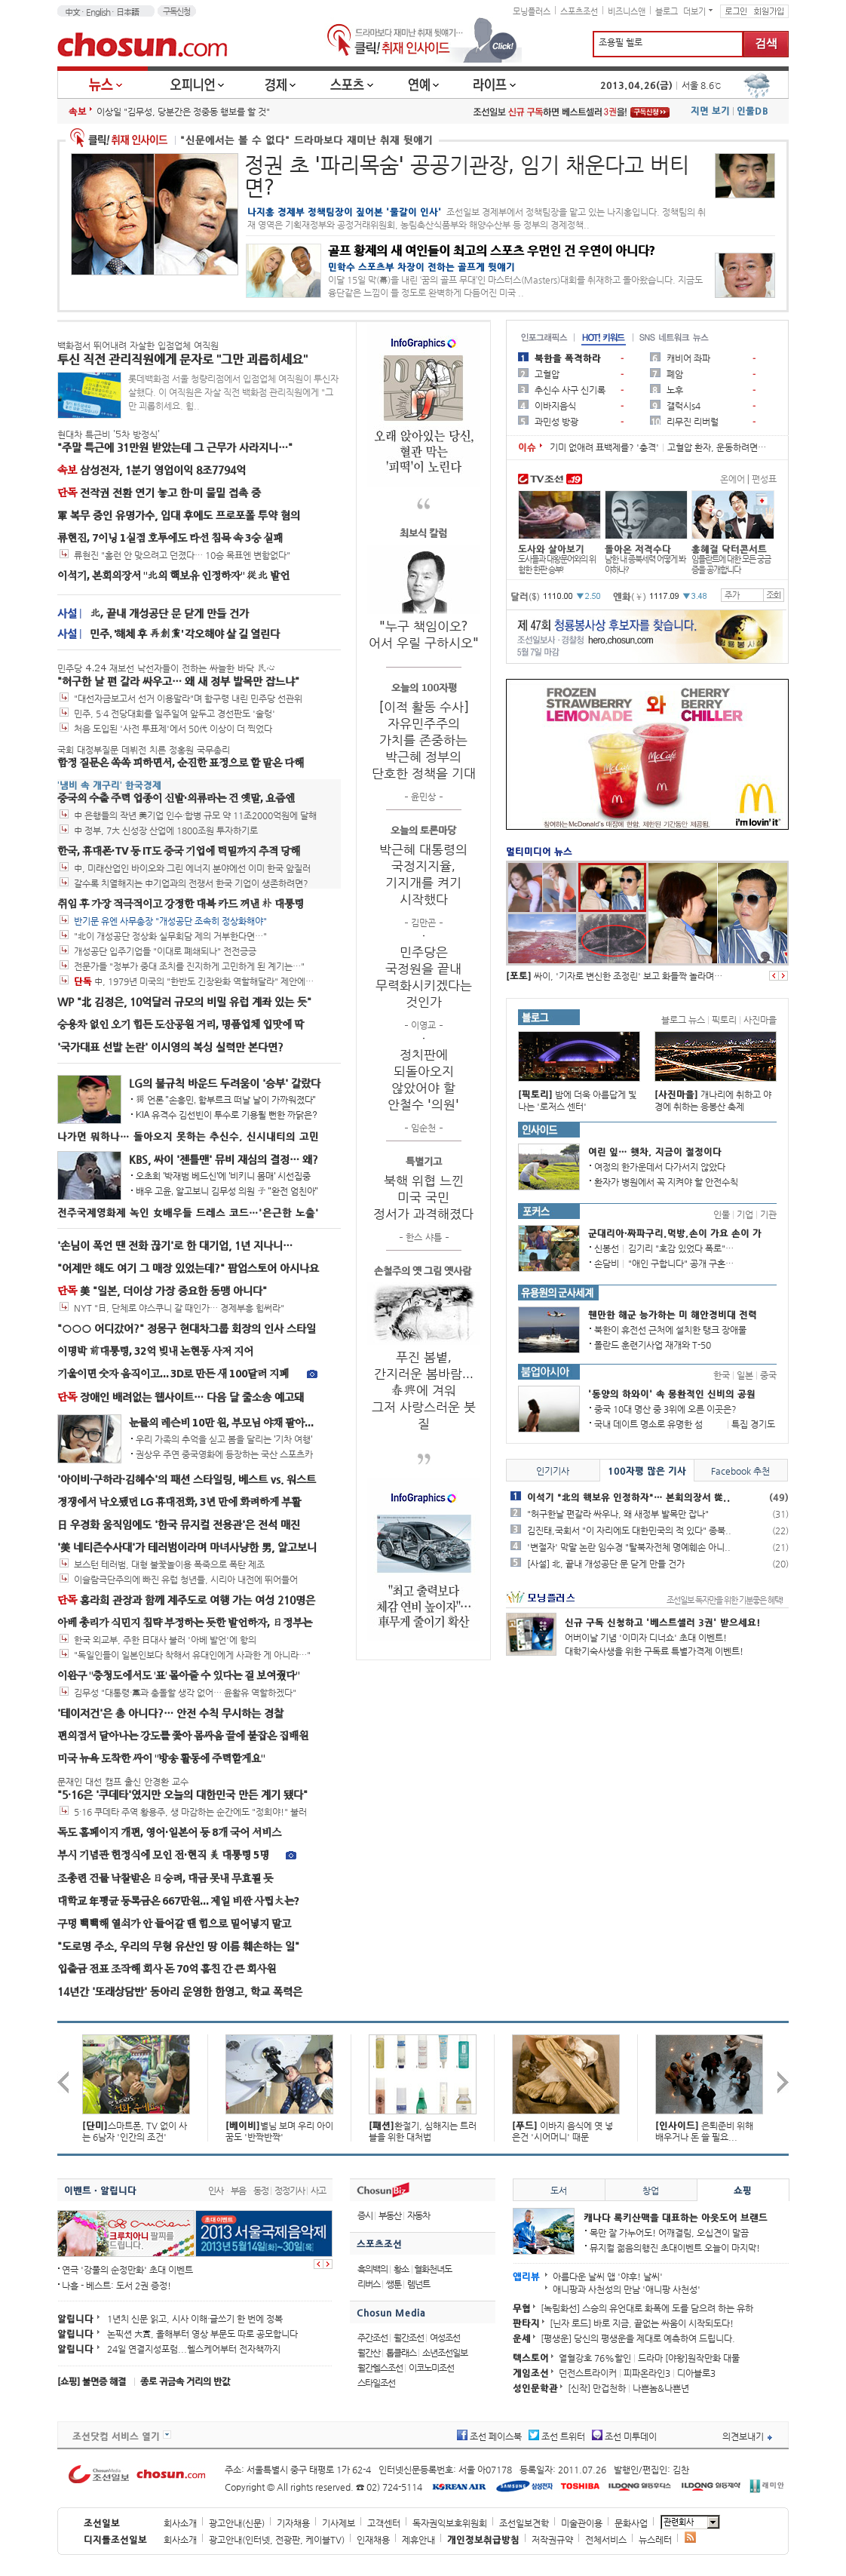 chosun.com at Friday April 26, 2013, 12:03 a.m. UTC